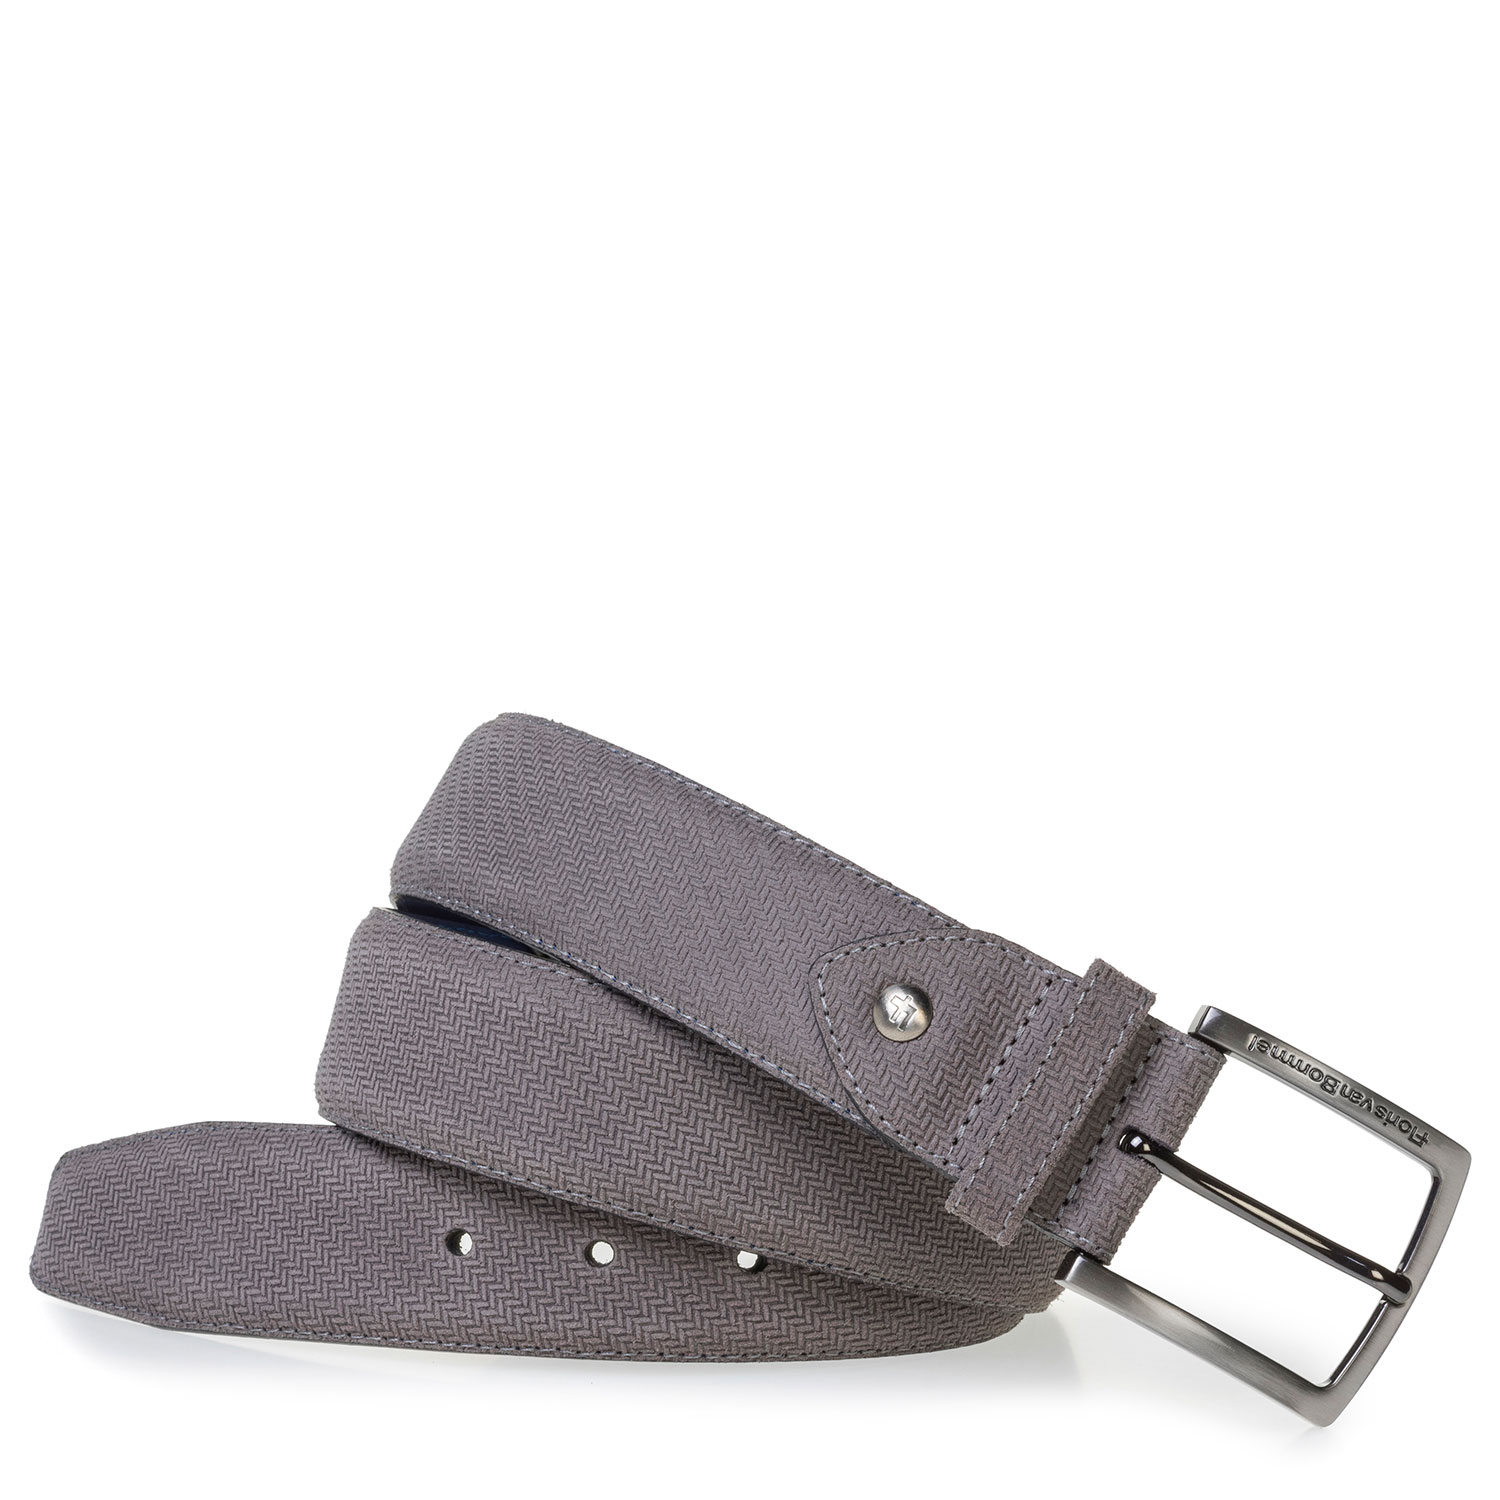 75202/47 - Grey suede leather belt with print